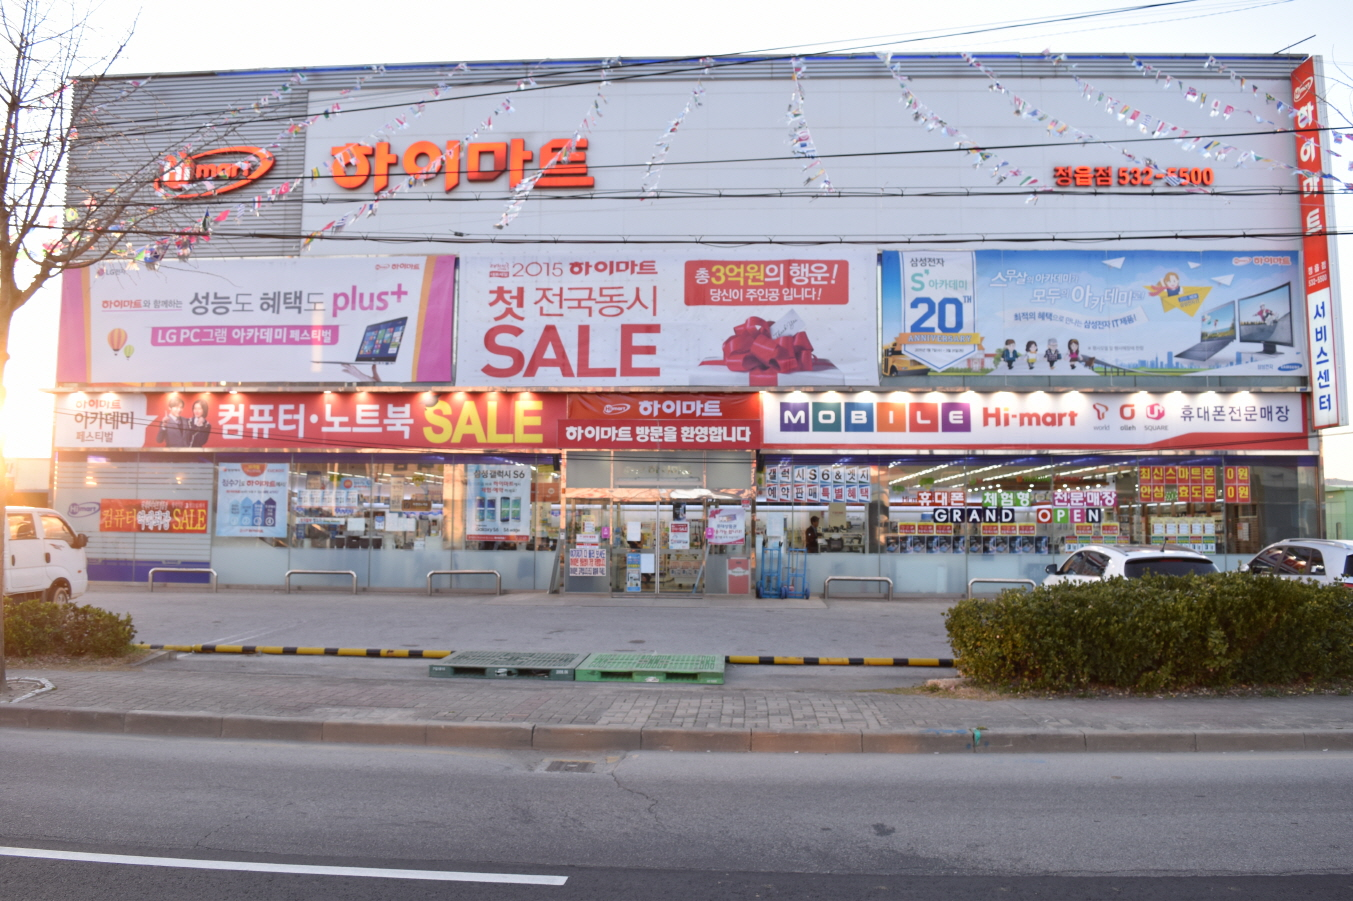 Lotte Hi-mart – Jeongeup Branch (롯데 하이마트 (정읍점))